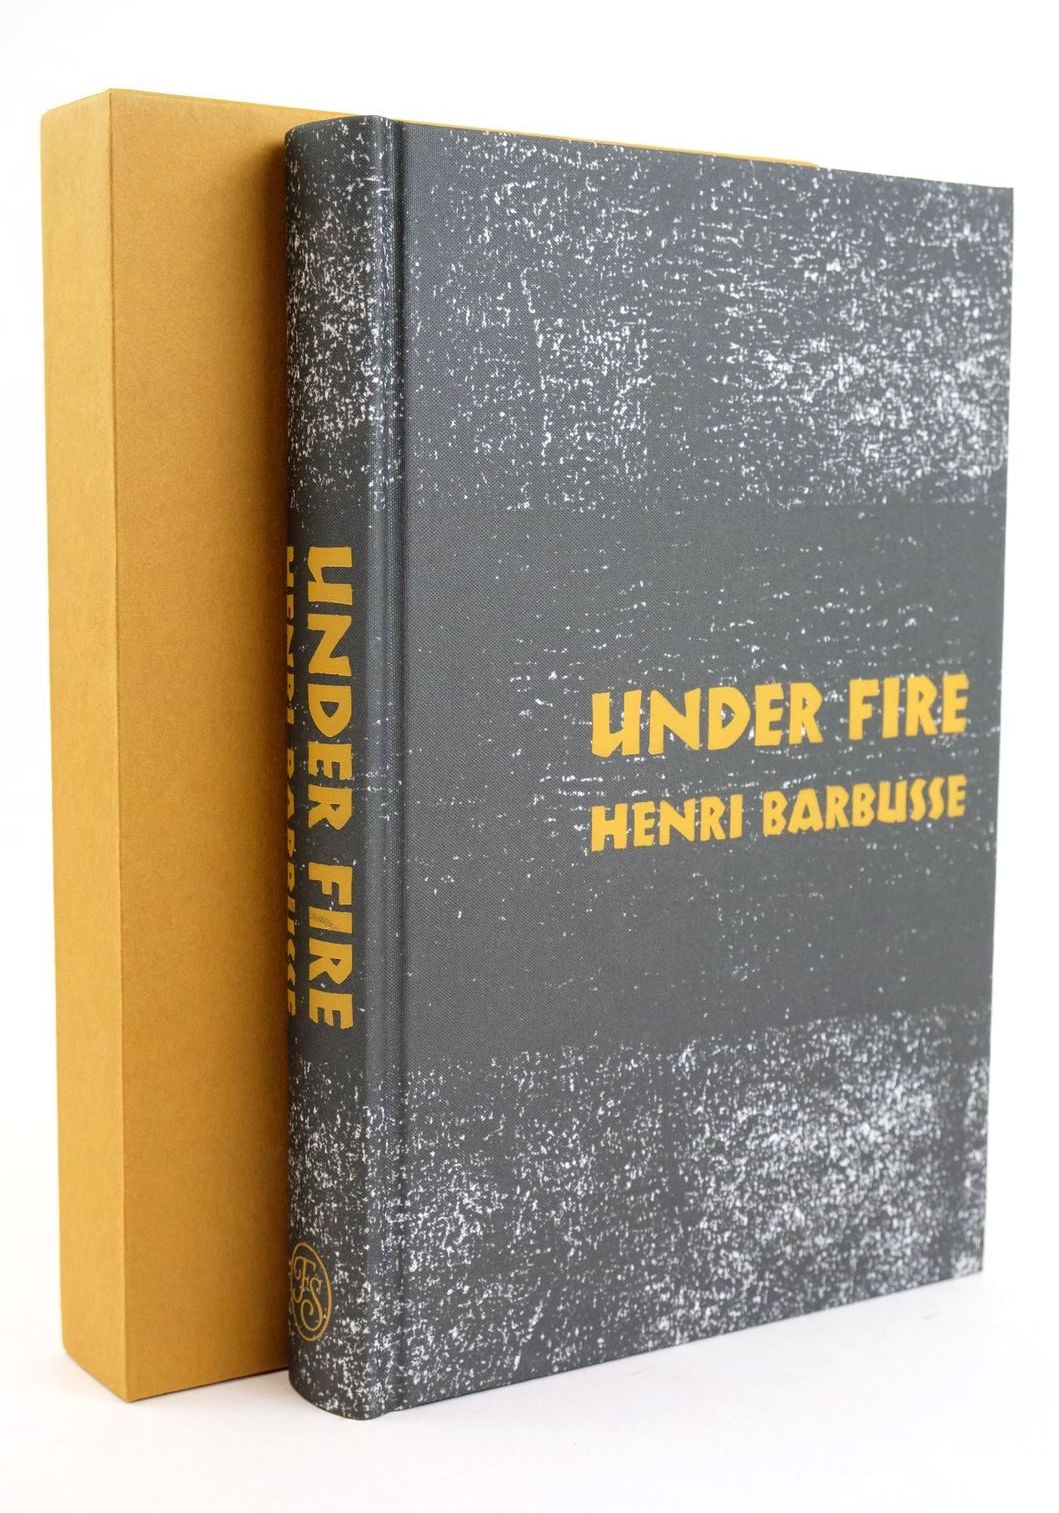 Photo of UNDER FIRE written by Barbusse, Henri Buss, Robin Strachan, Hew published by Folio Society (STOCK CODE: 1319133)  for sale by Stella & Rose's Books